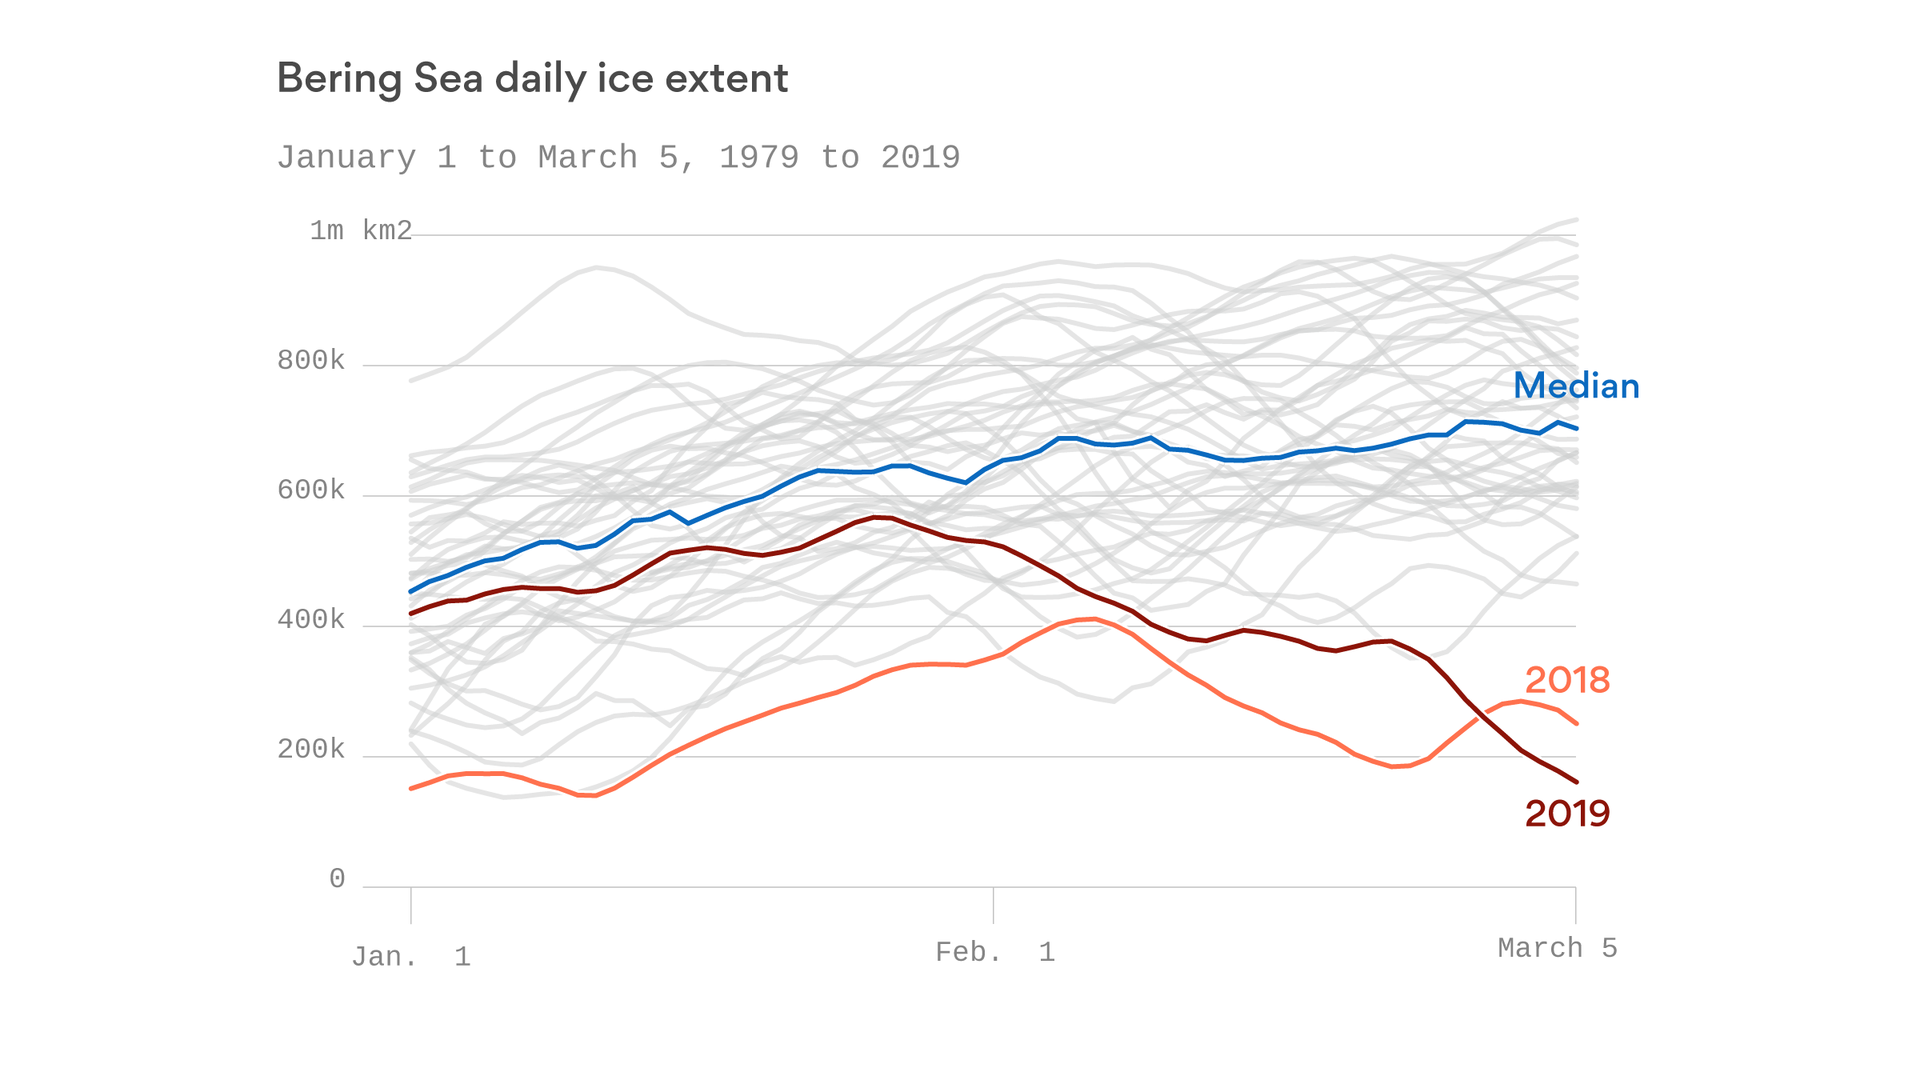 Ice in the Bering Sea is vanishing, down to its lowest level since 1850